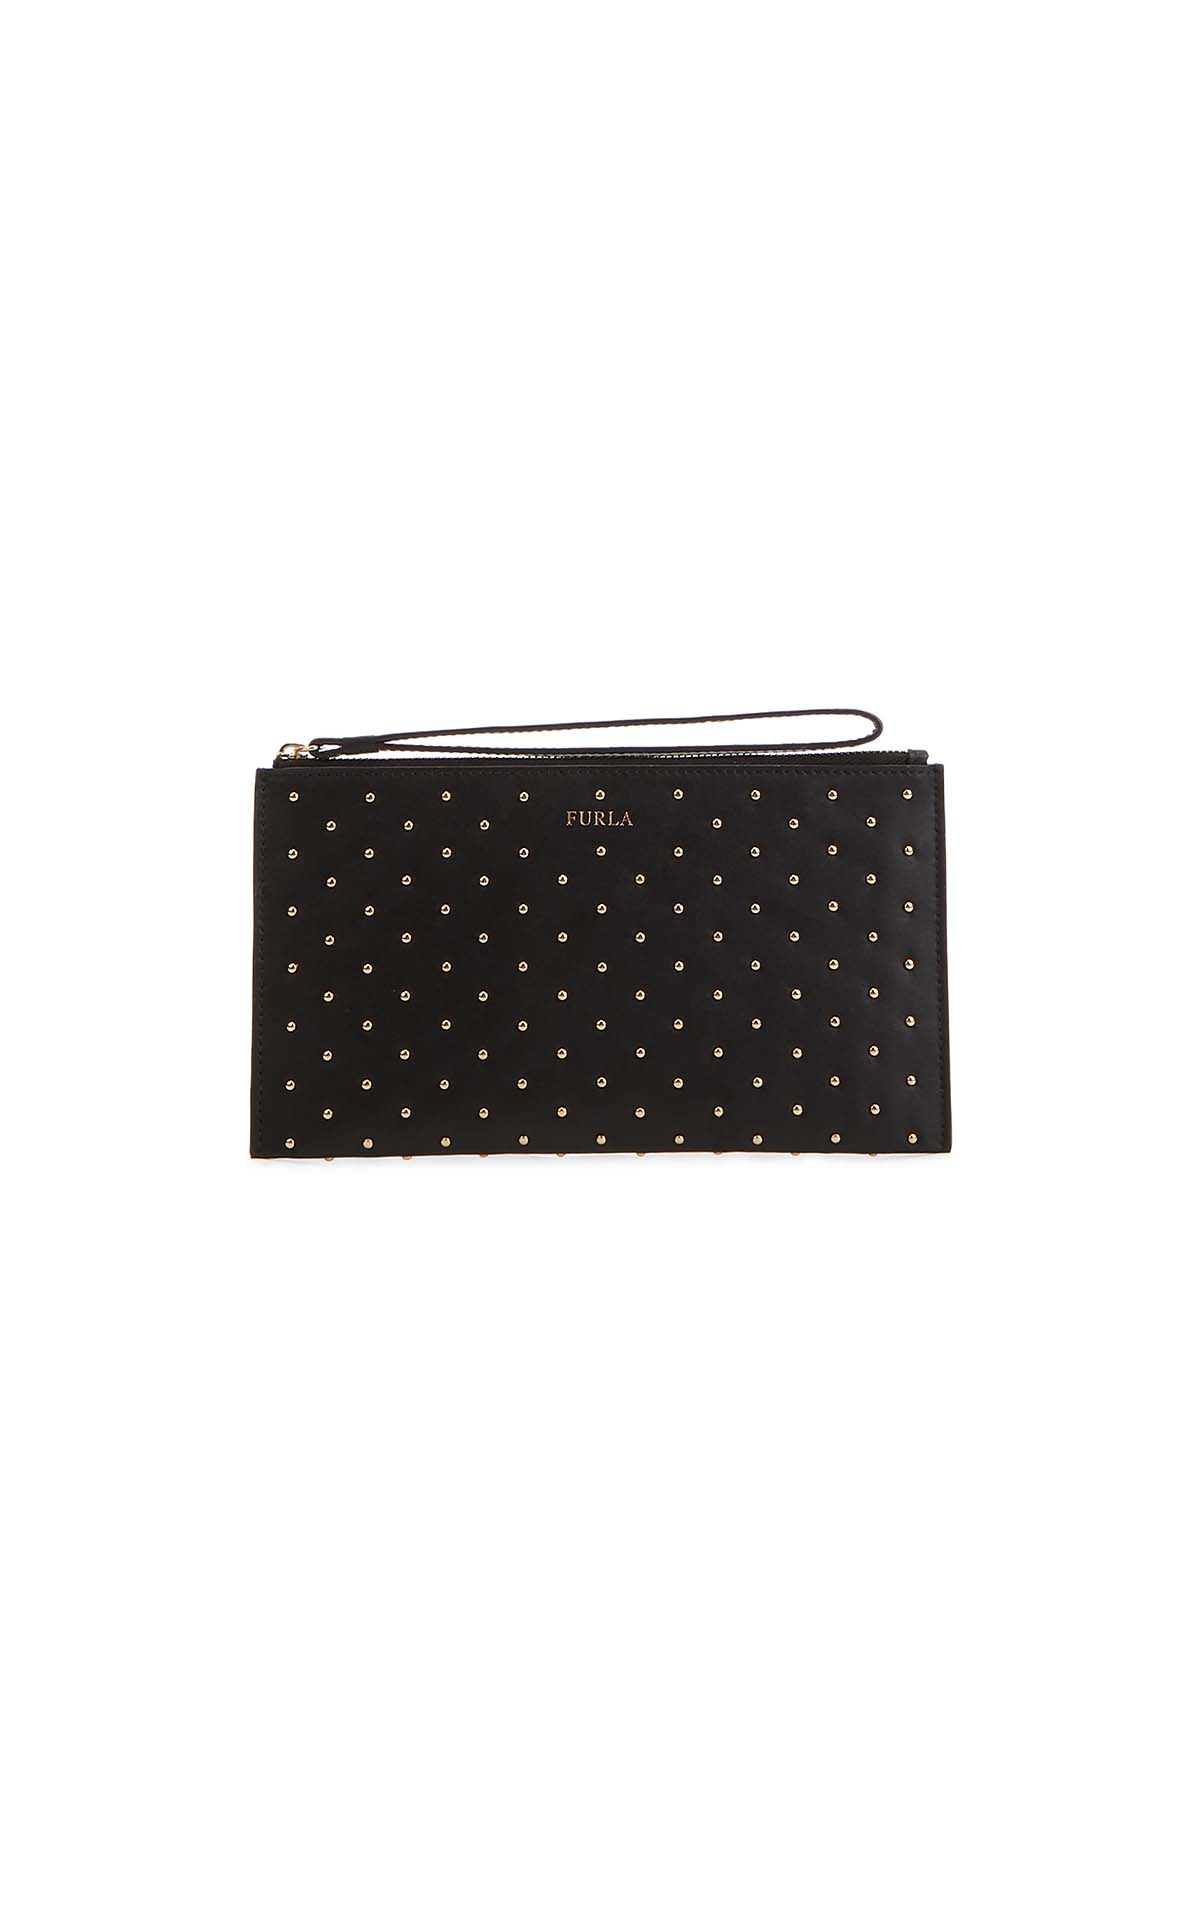 Furla Italia XL envelope black bag at The Bicester Village Shopping Collection